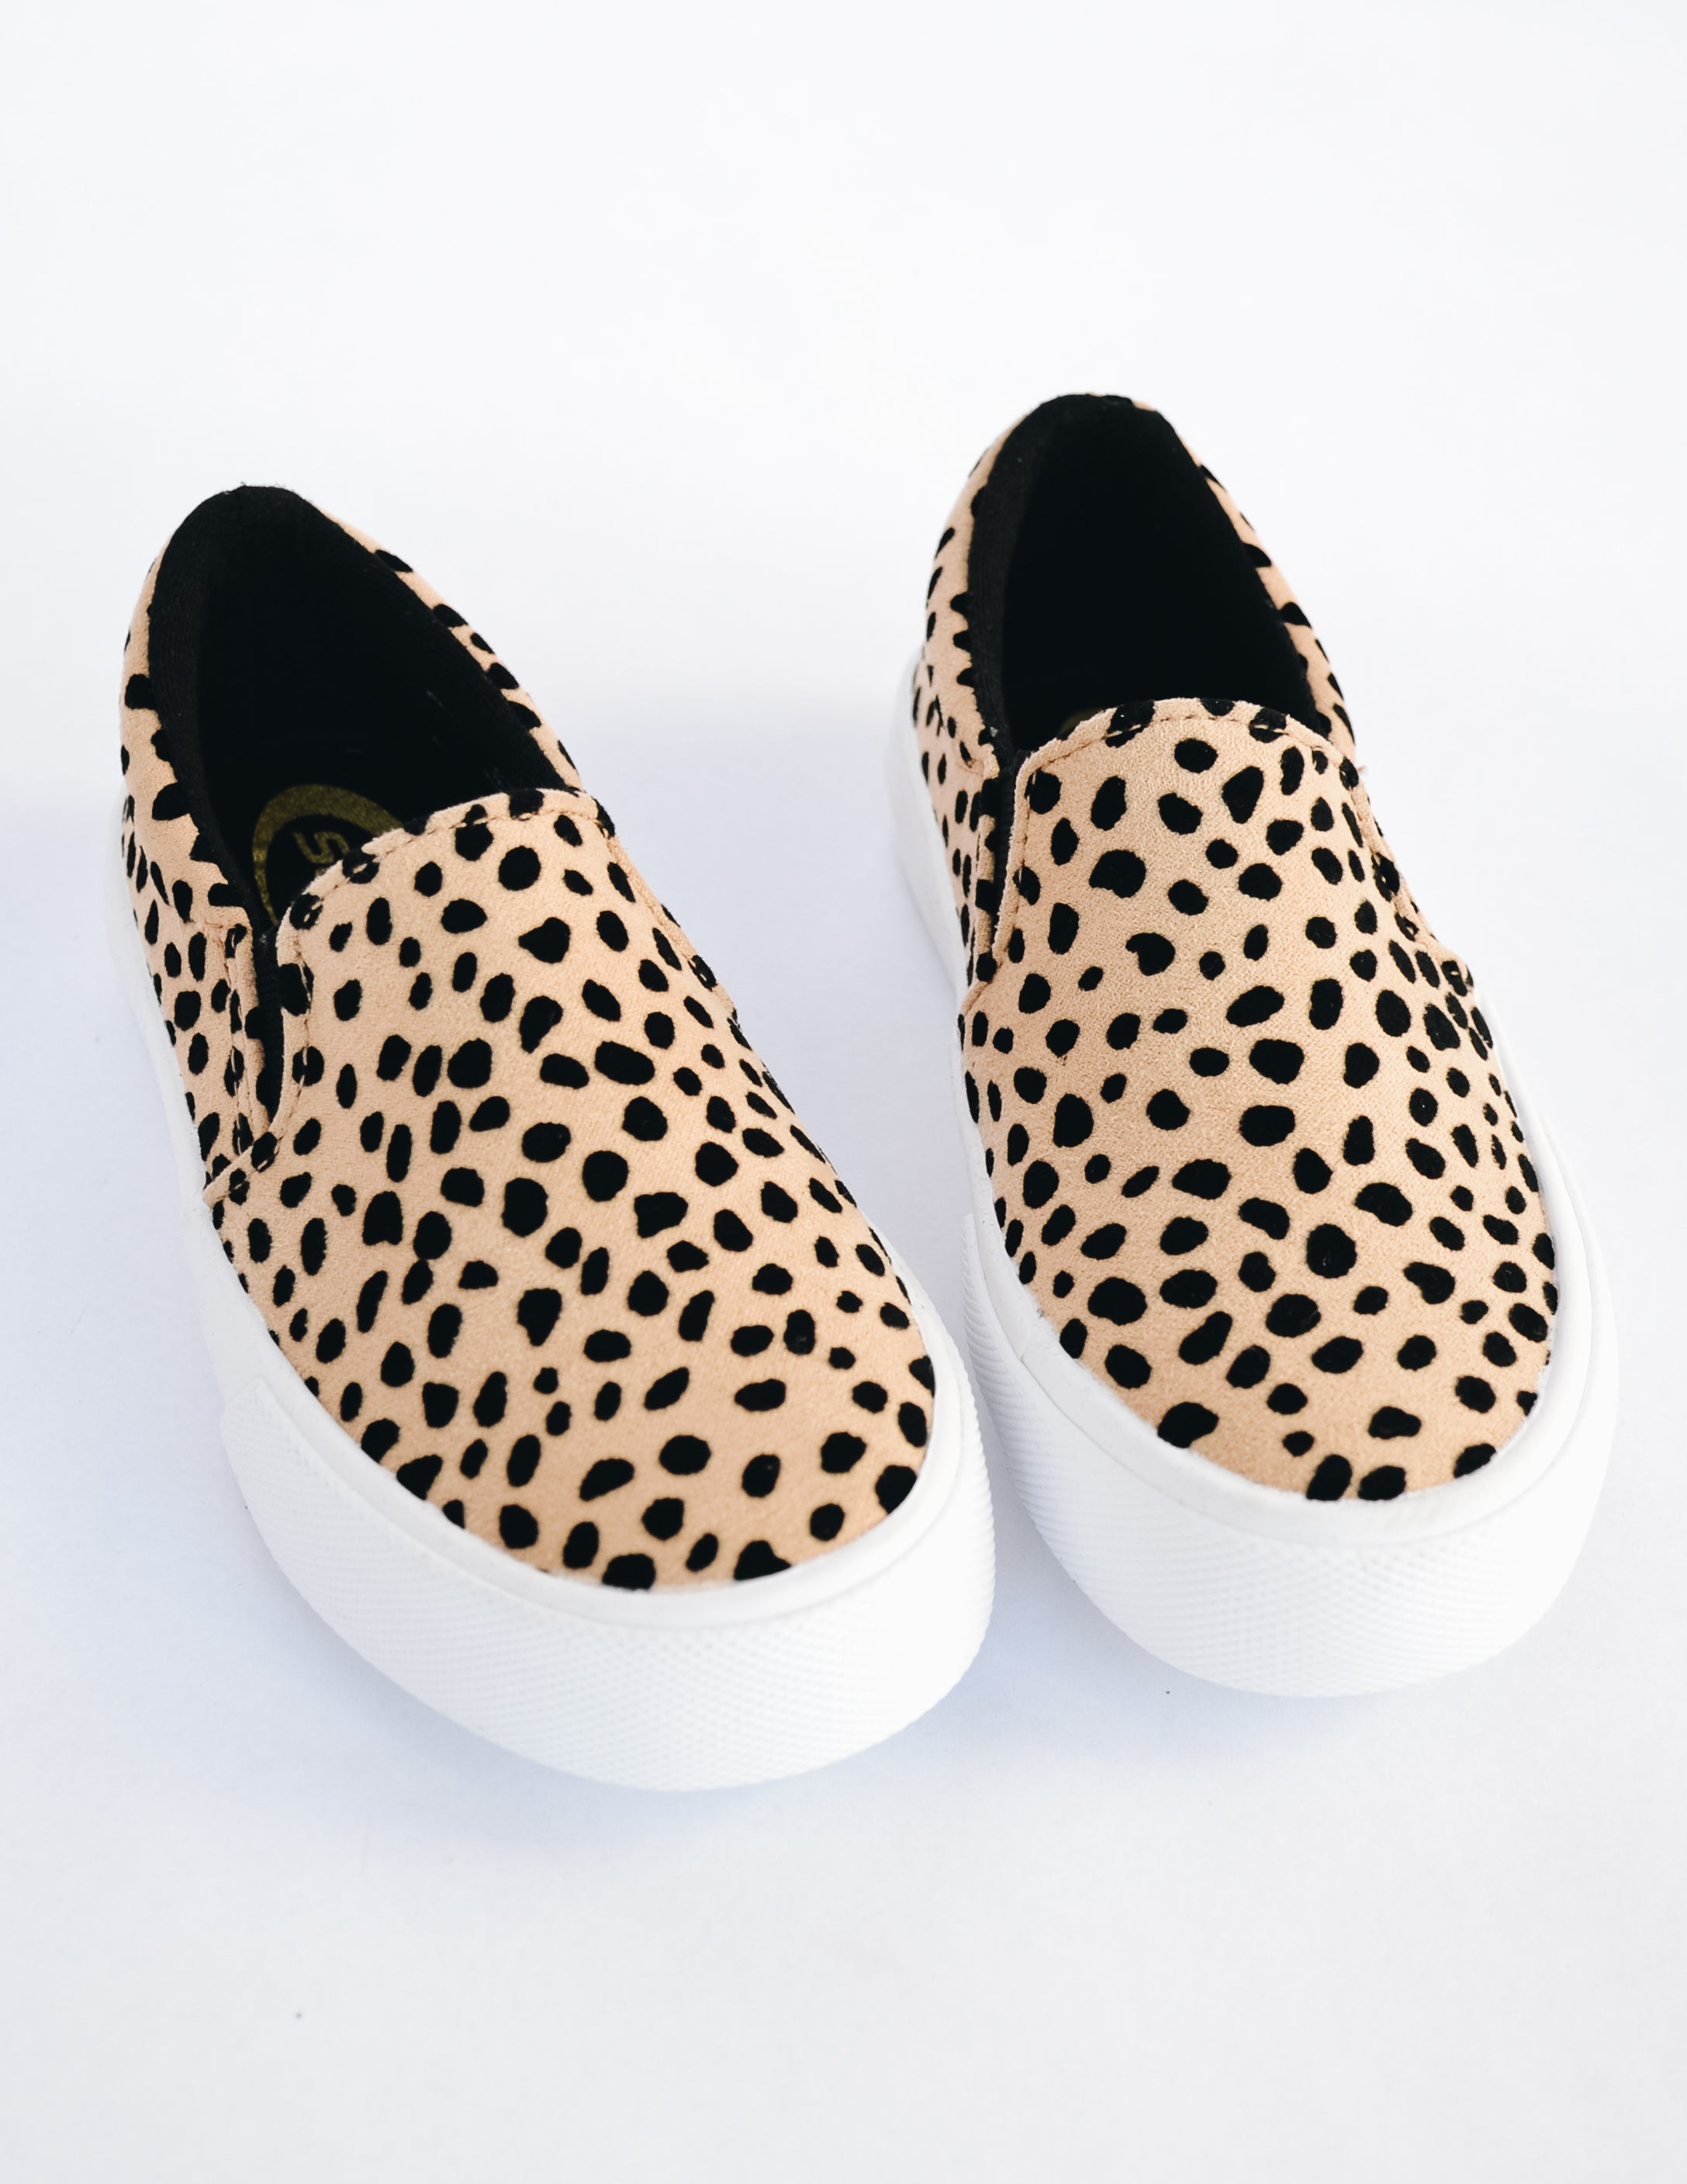 Close up showing cheetah print on the kid girl sneaker - elle bleu shoes